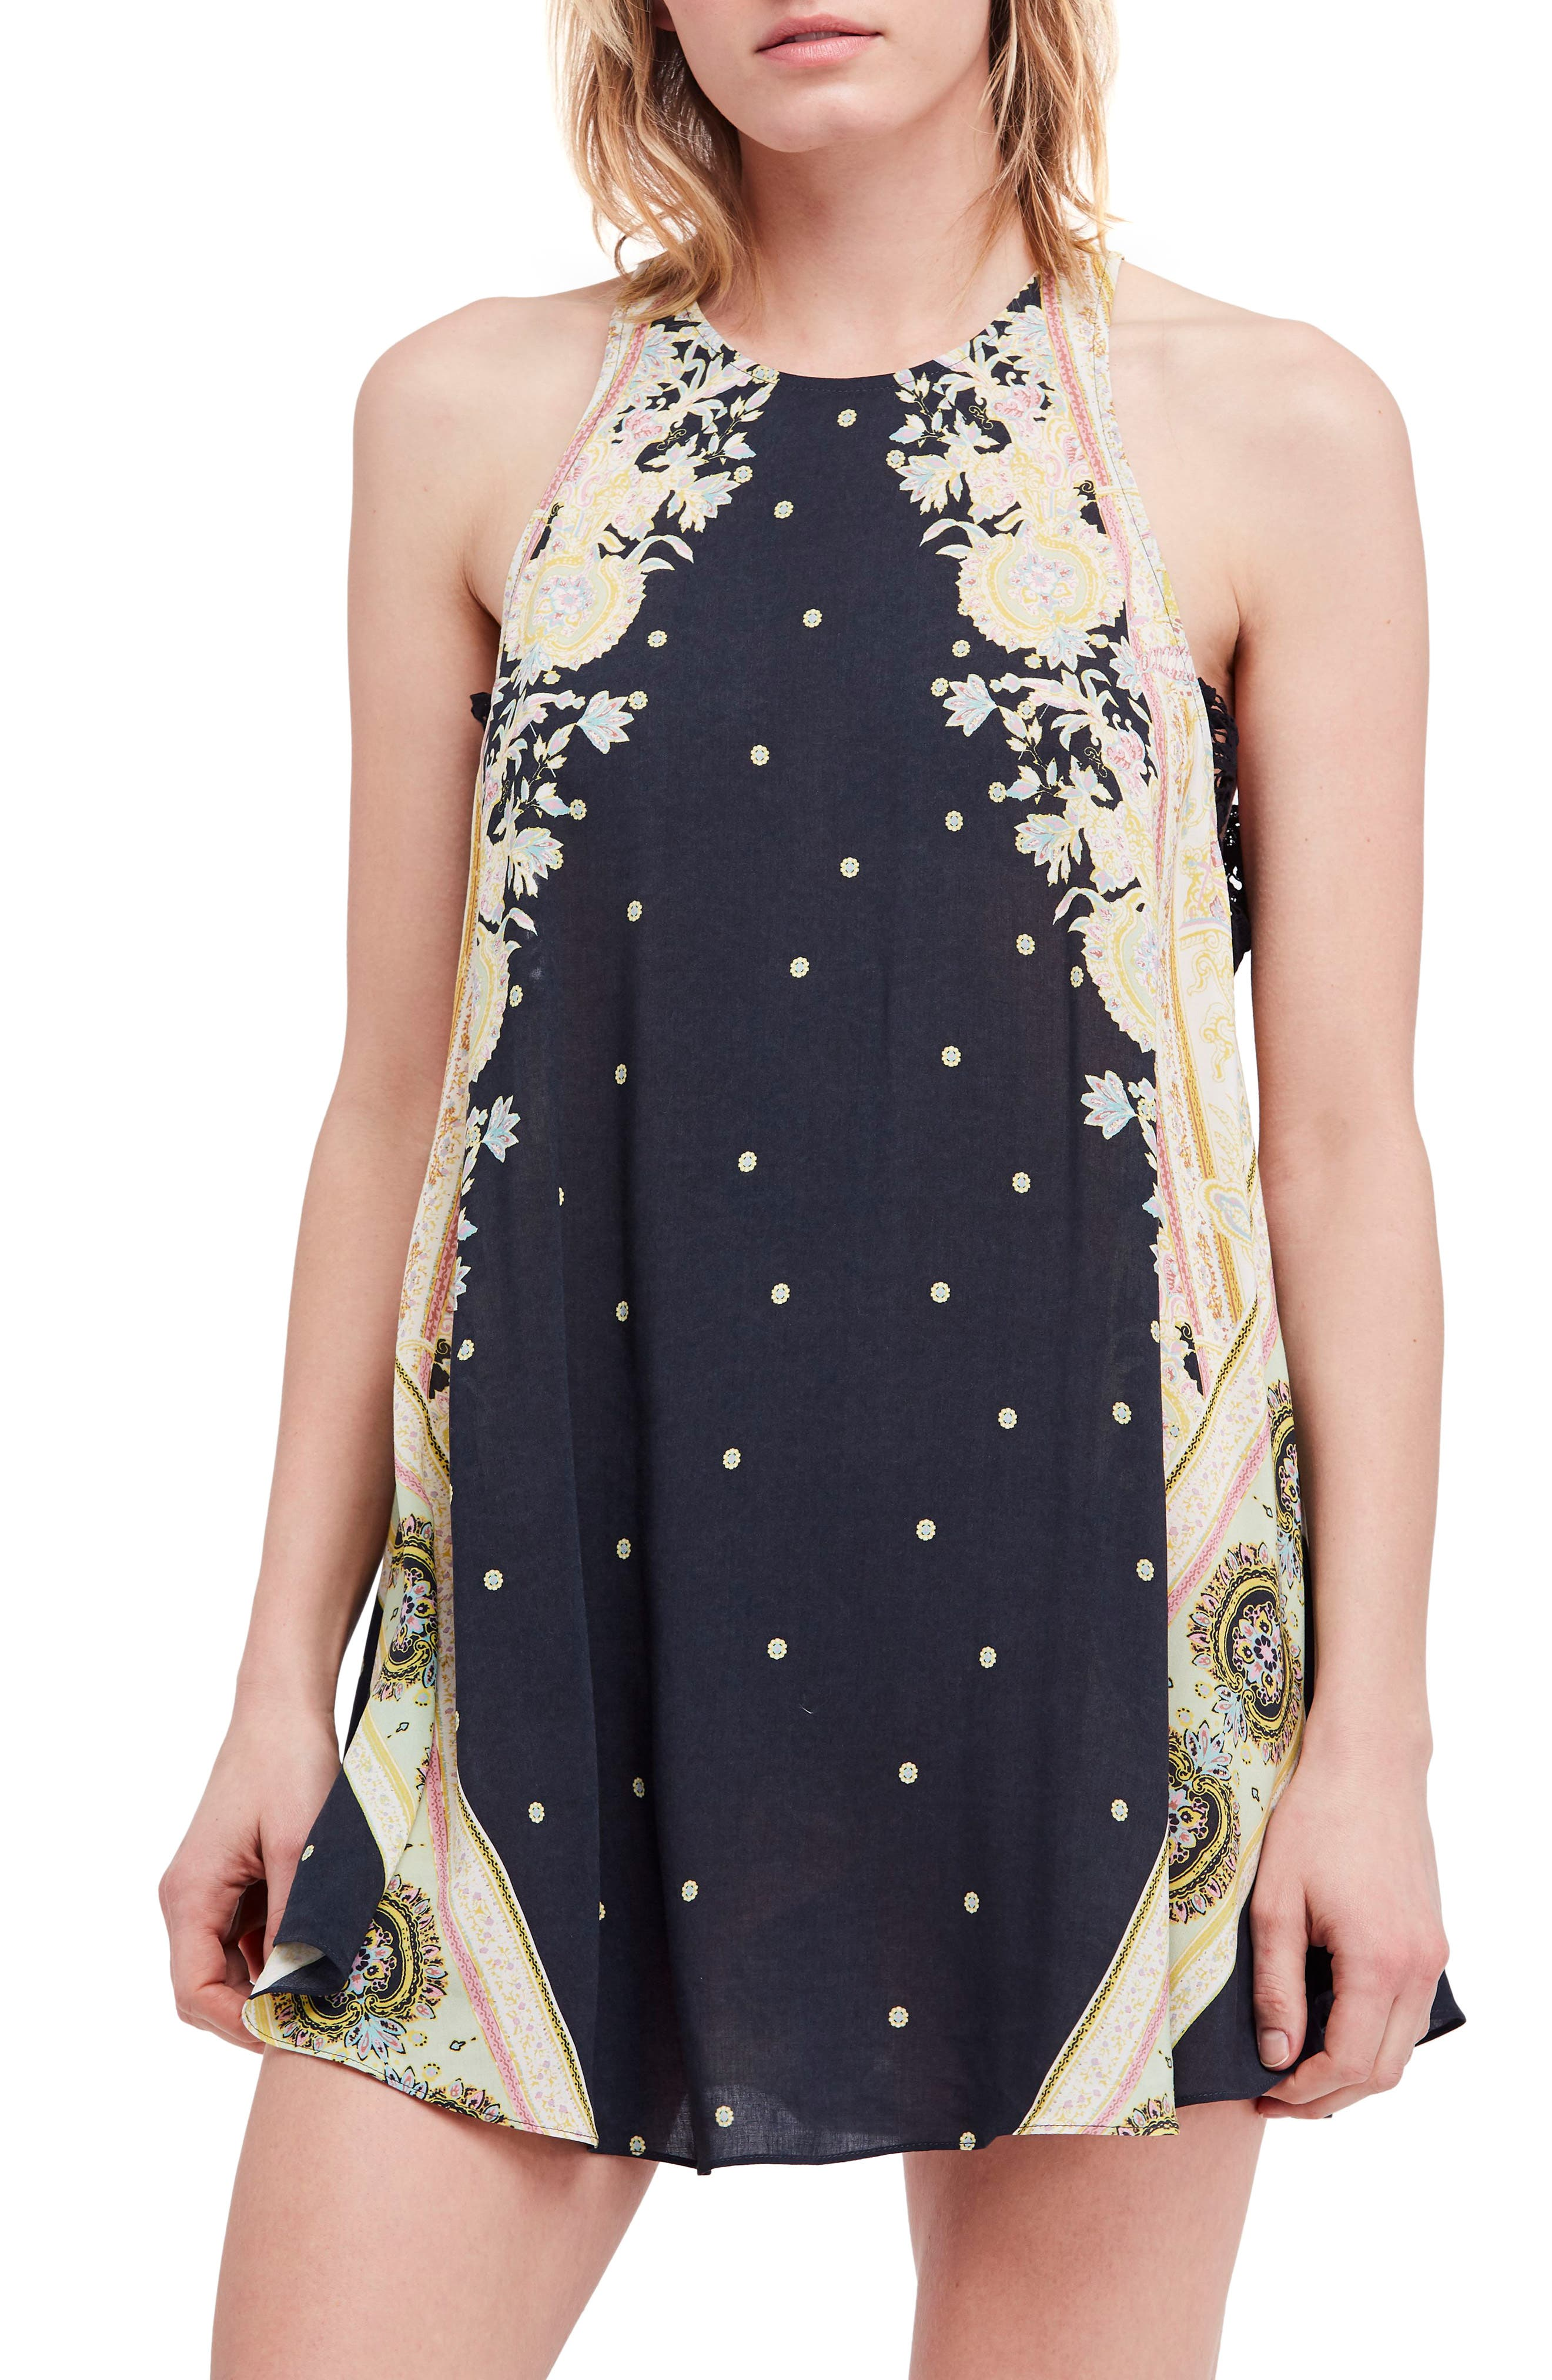 Darjeeling Print Minidress,                         Main,                         color, BLACK COMBO